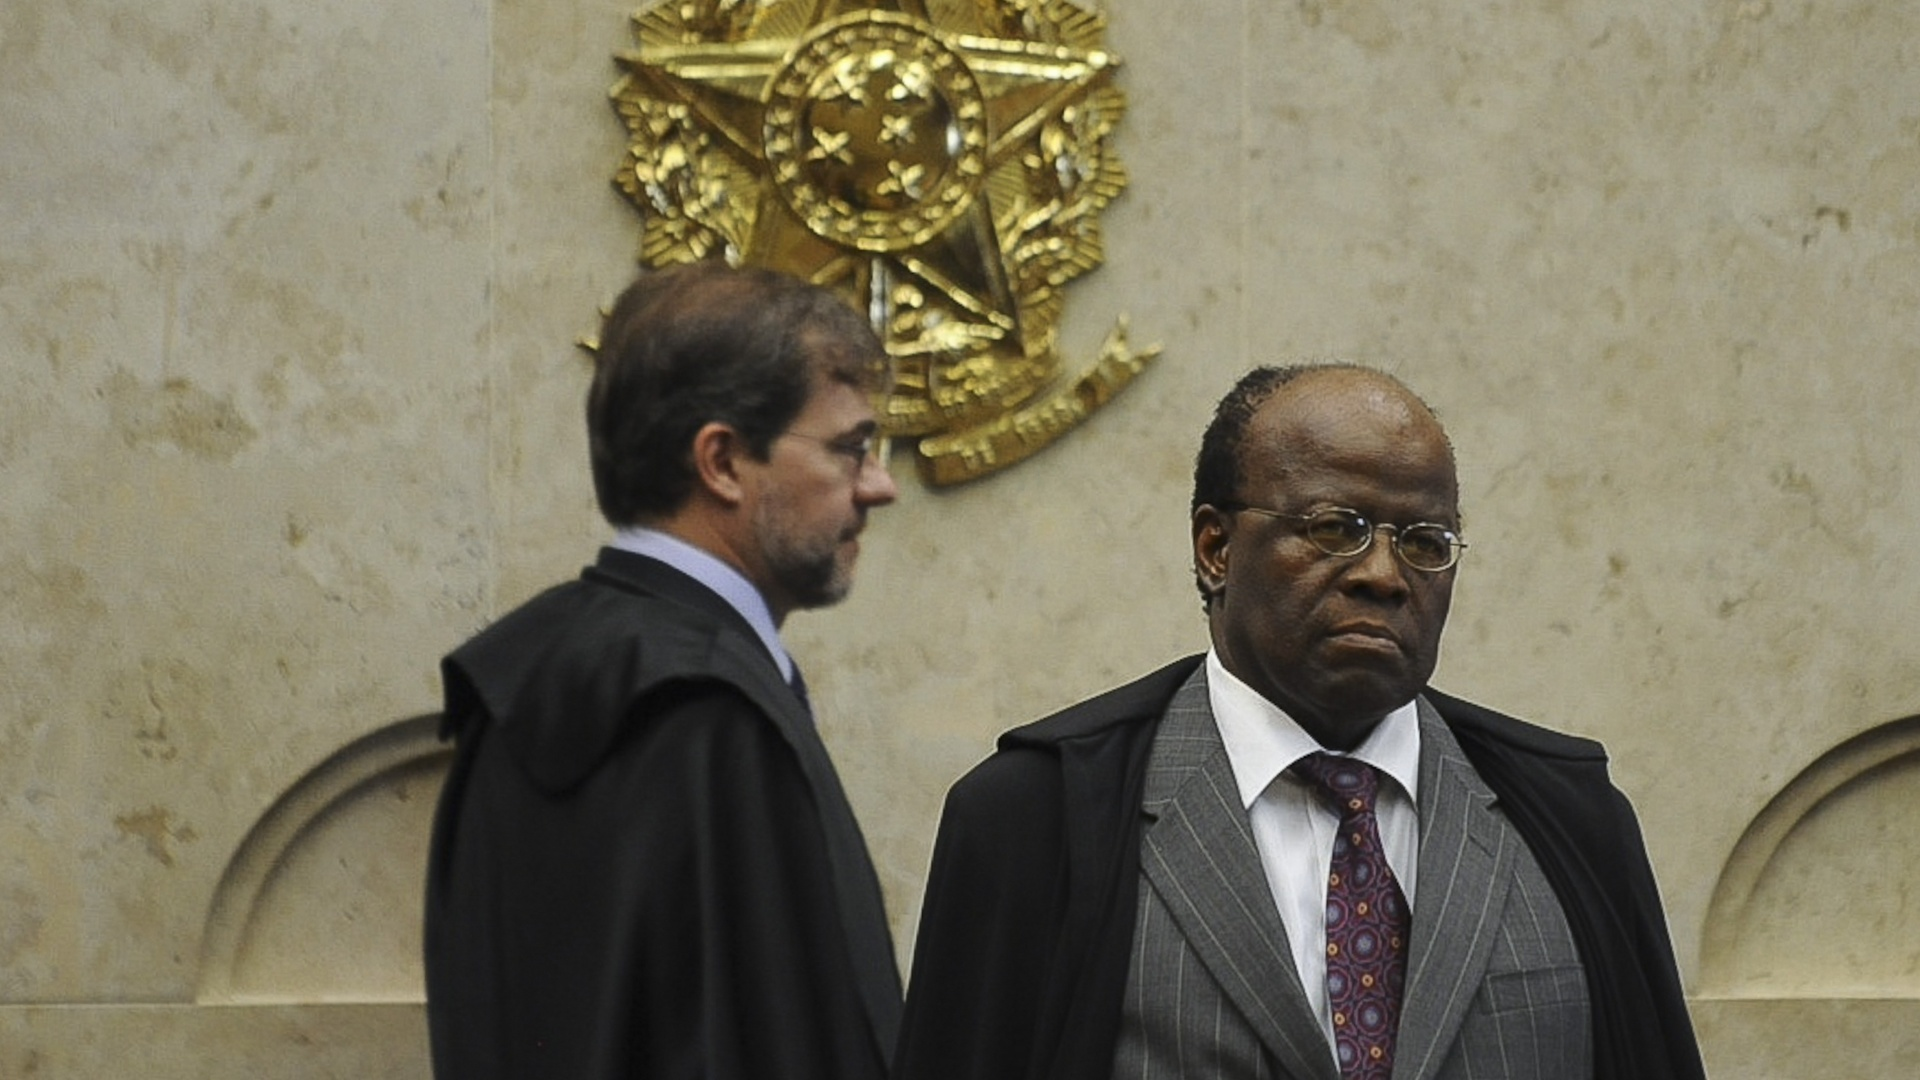 21.nov.2012 - Os ministros do STF (Supremo Tribunal Federal) Antnio Dias Toffoli (ao fundo) e Joaquim Barbosa, durante sesso de julgamento do mensalo nesta quarta-feira. O STF condenou por lavagem de dinheiro o ex-tesoreiro do PL (atual PR) Jacinto Lamas, que  poca assessorava o deputado Valdemar Costa Neto (PR-SP), a 5 anos de priso, mais 200 dias-multa (cada dia-multa equivalente a cinco salrios mnimos em valores vigentes  poca)